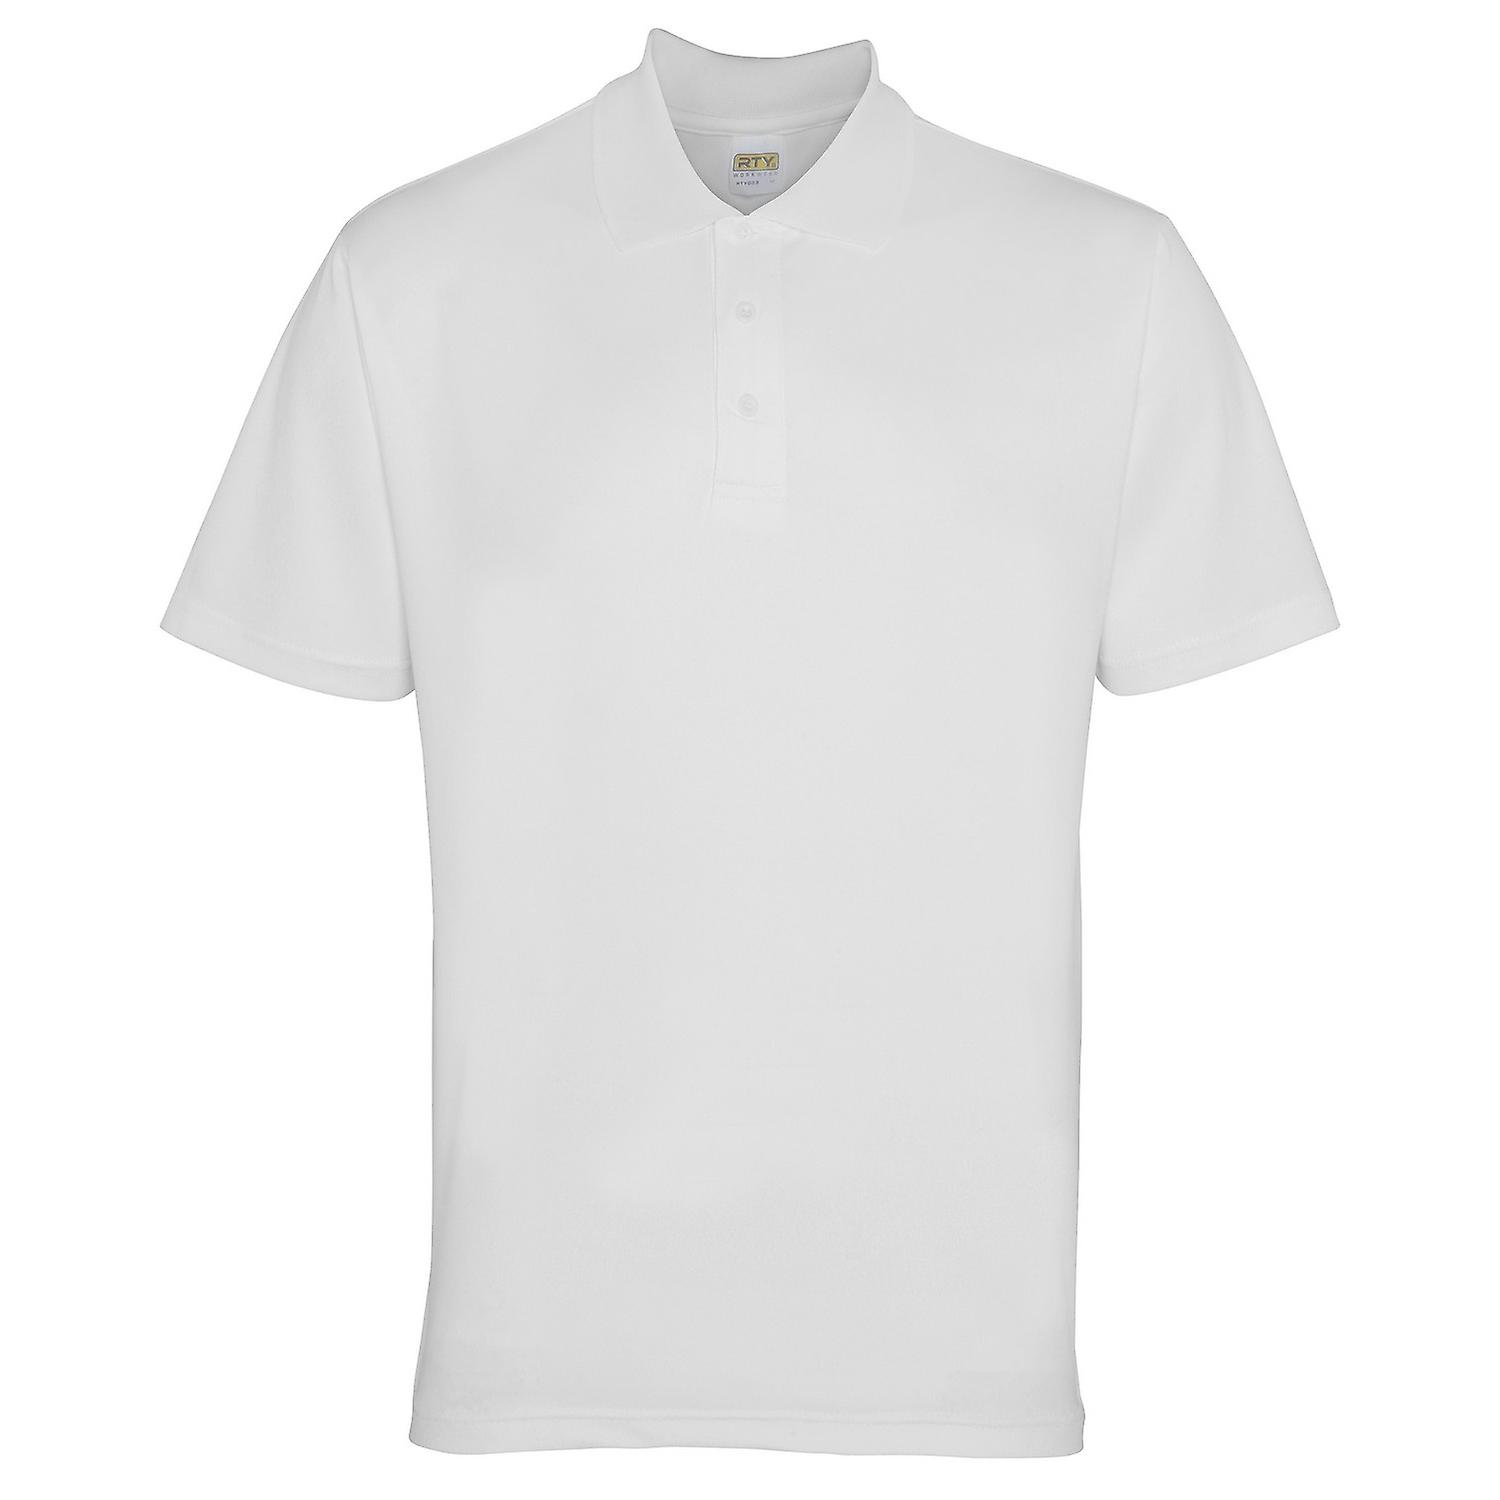 RTY Workwear Mens Short Sleeve Performance Polo Shirt